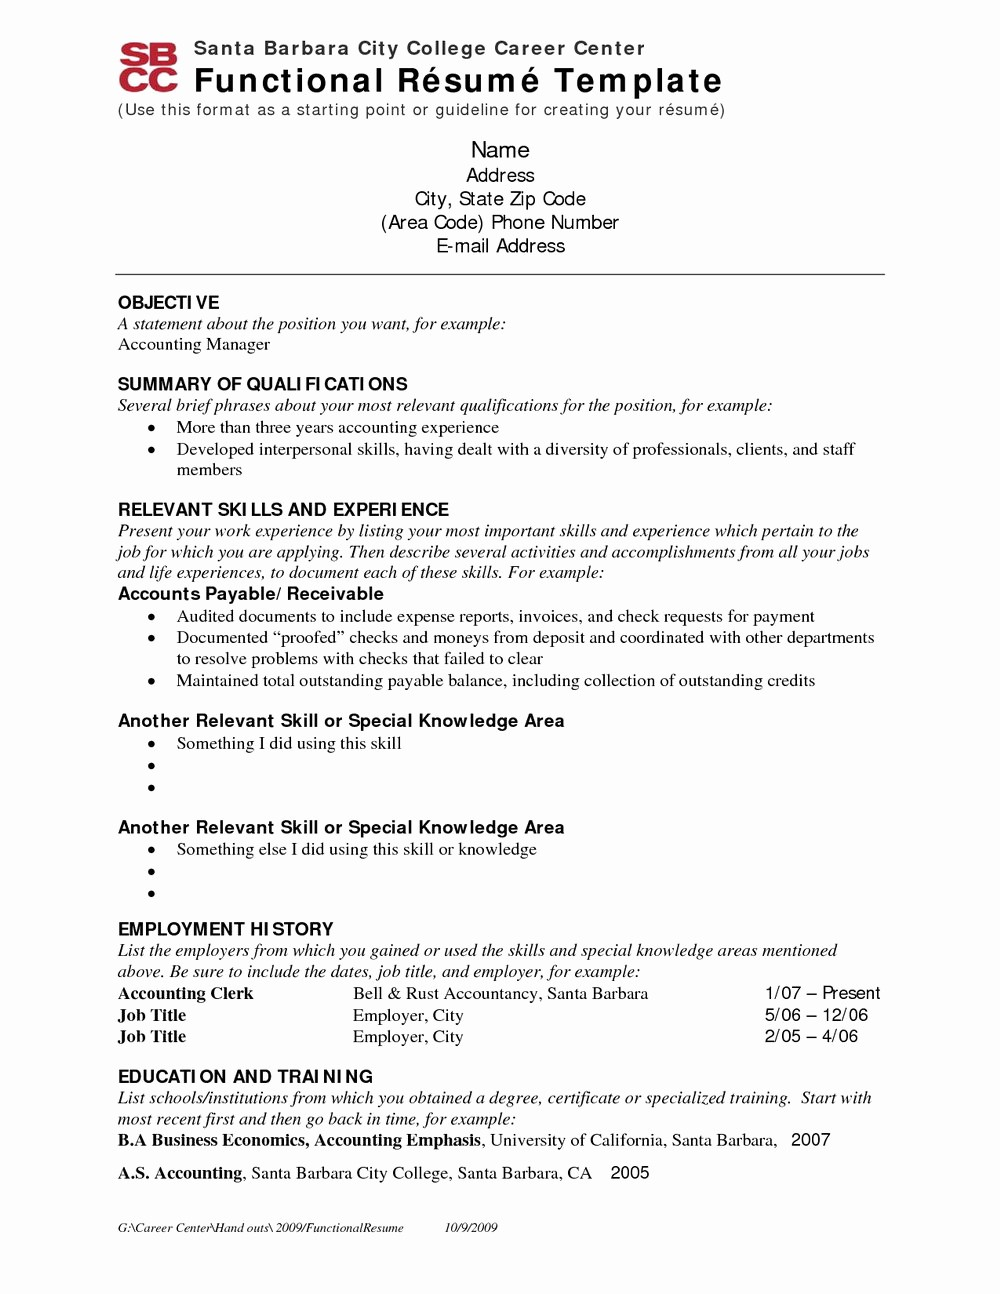 Functional Resume Templates Free Download Awesome Functional Resume Template Free Download Wedding